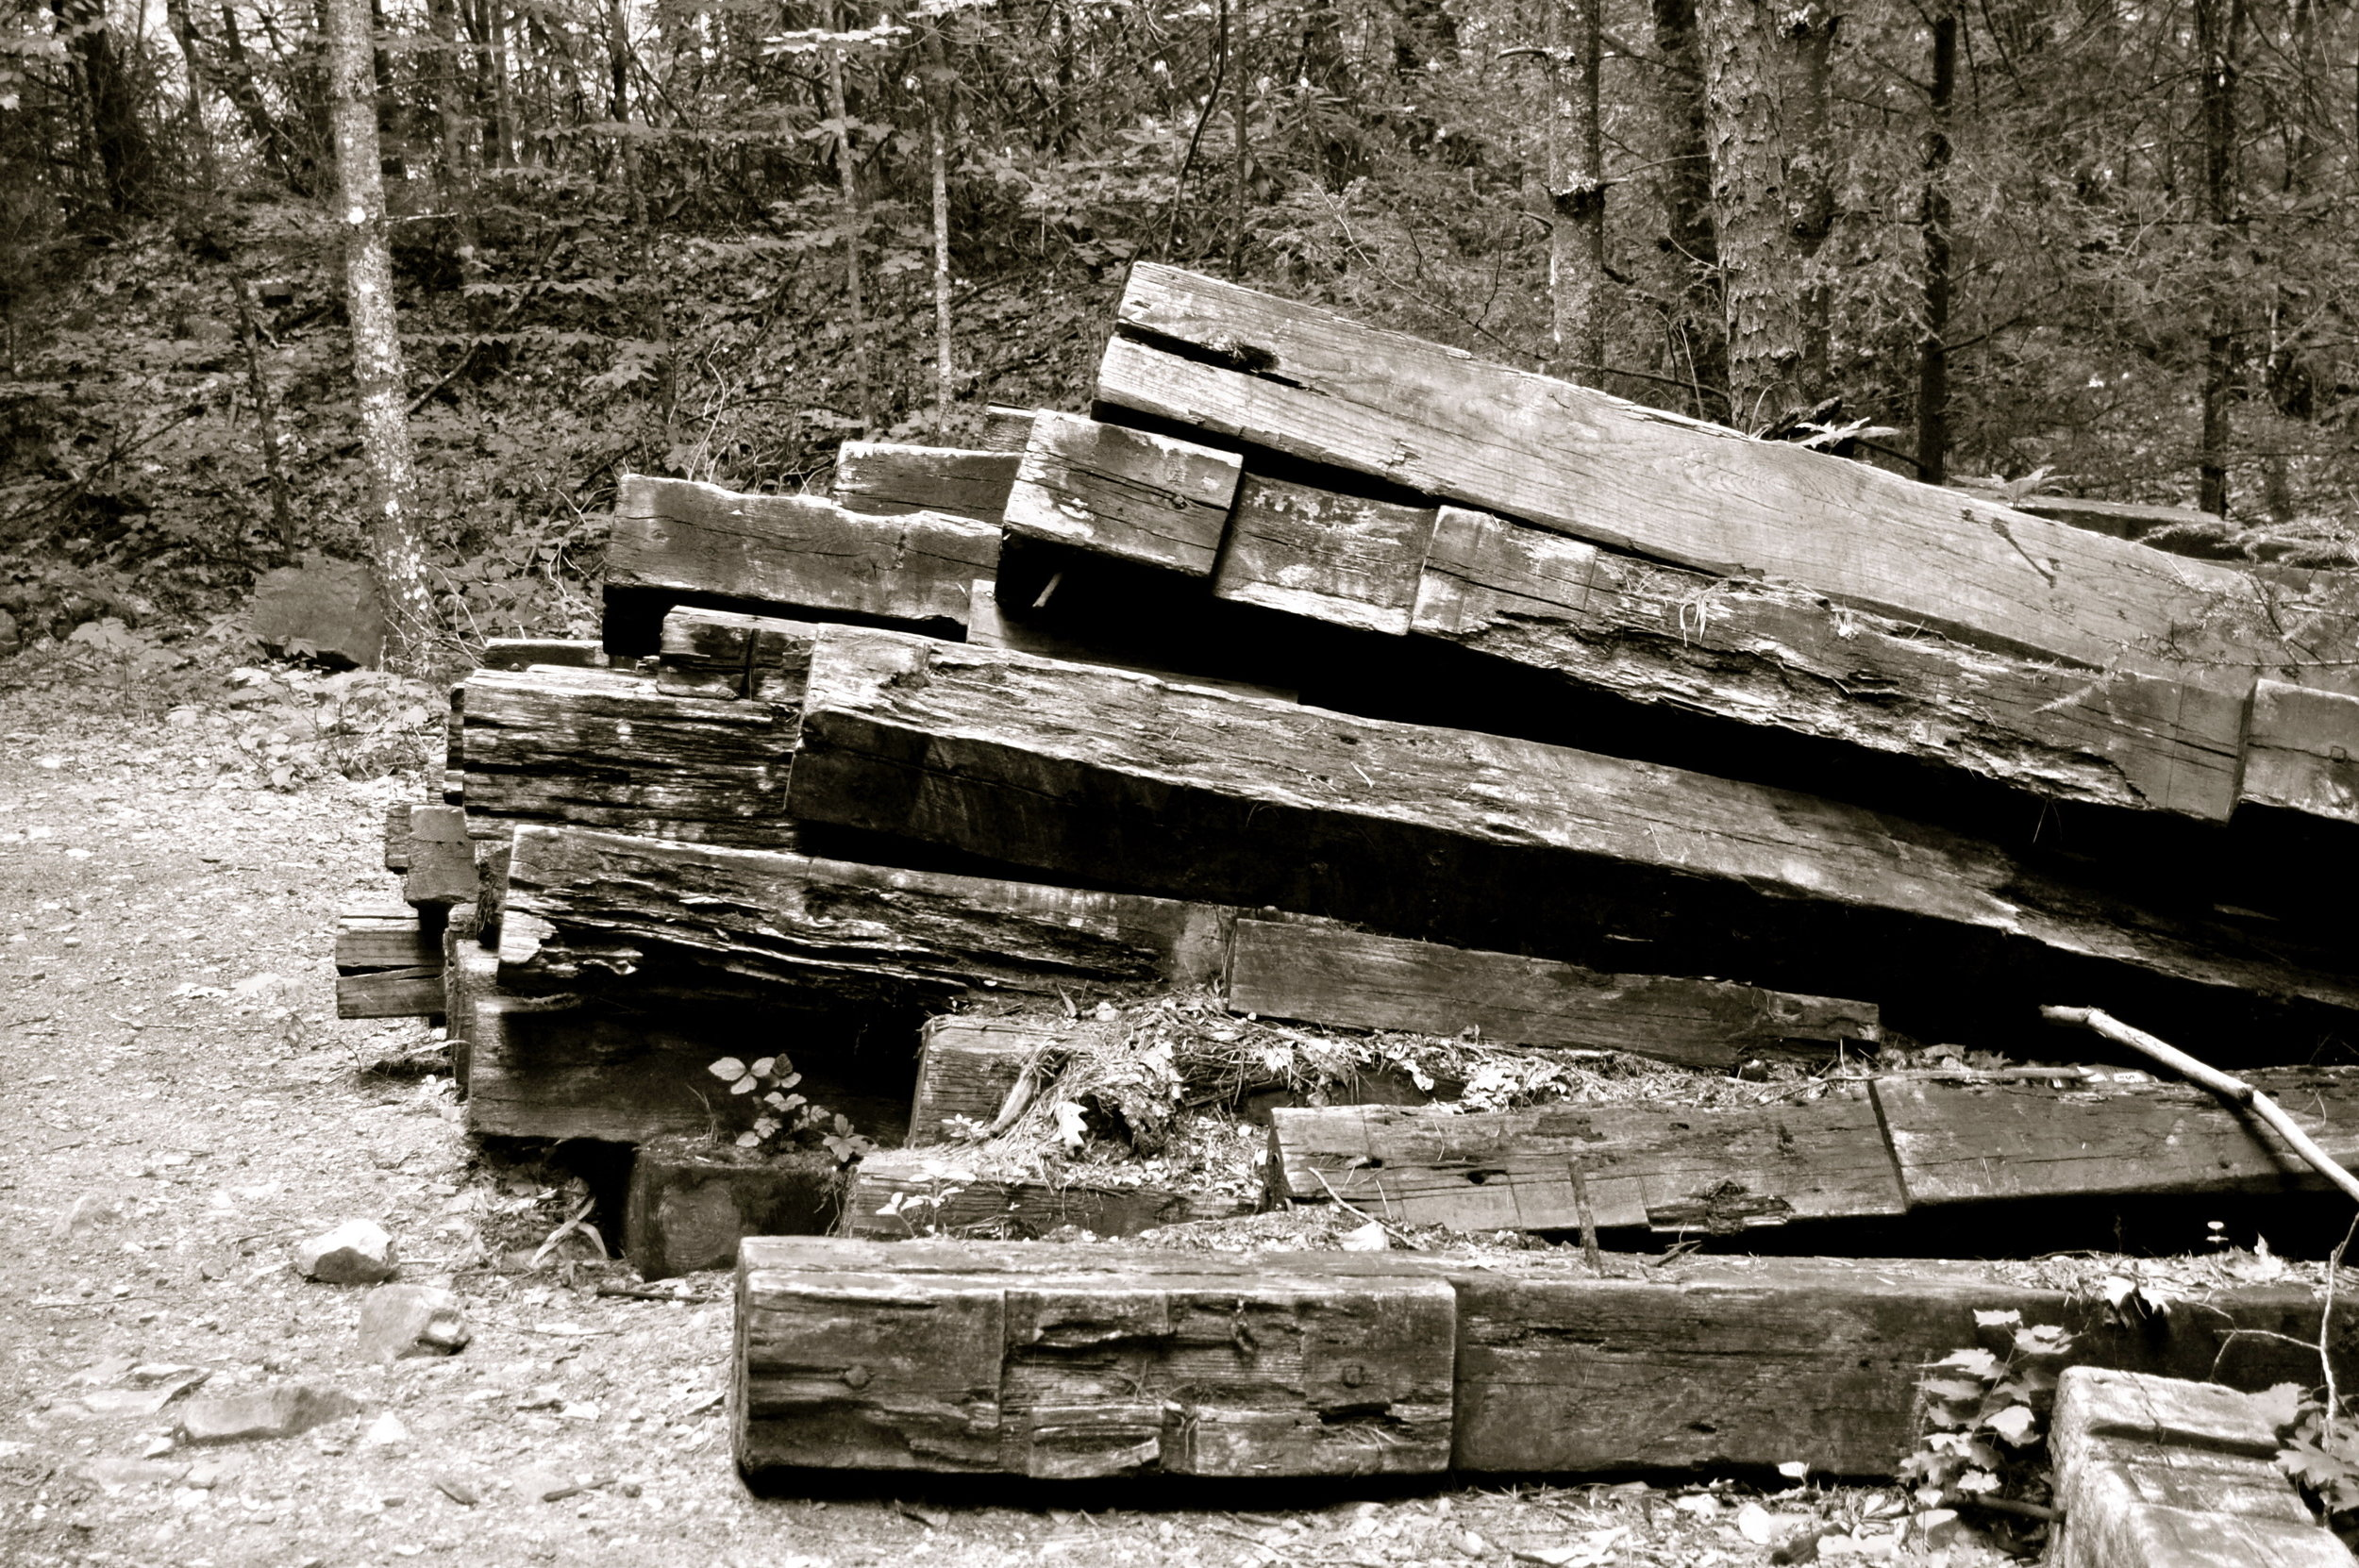 Old railroad ties piled up outside of Whitetop, Virginia.